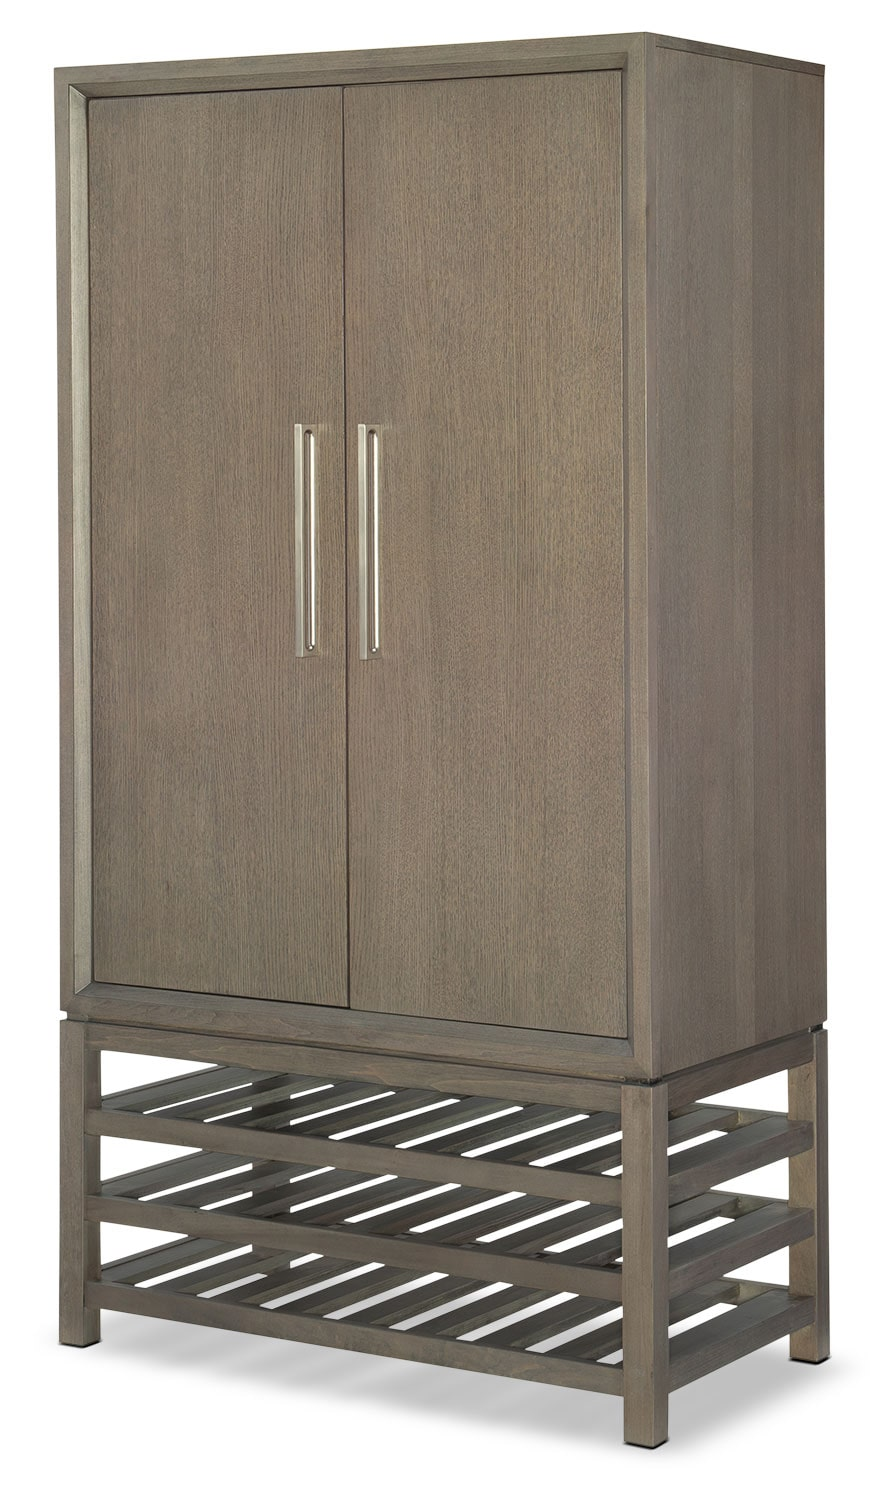 Dining Room Furniture - Rachael Ray Highline Bar Cabinet - Greige